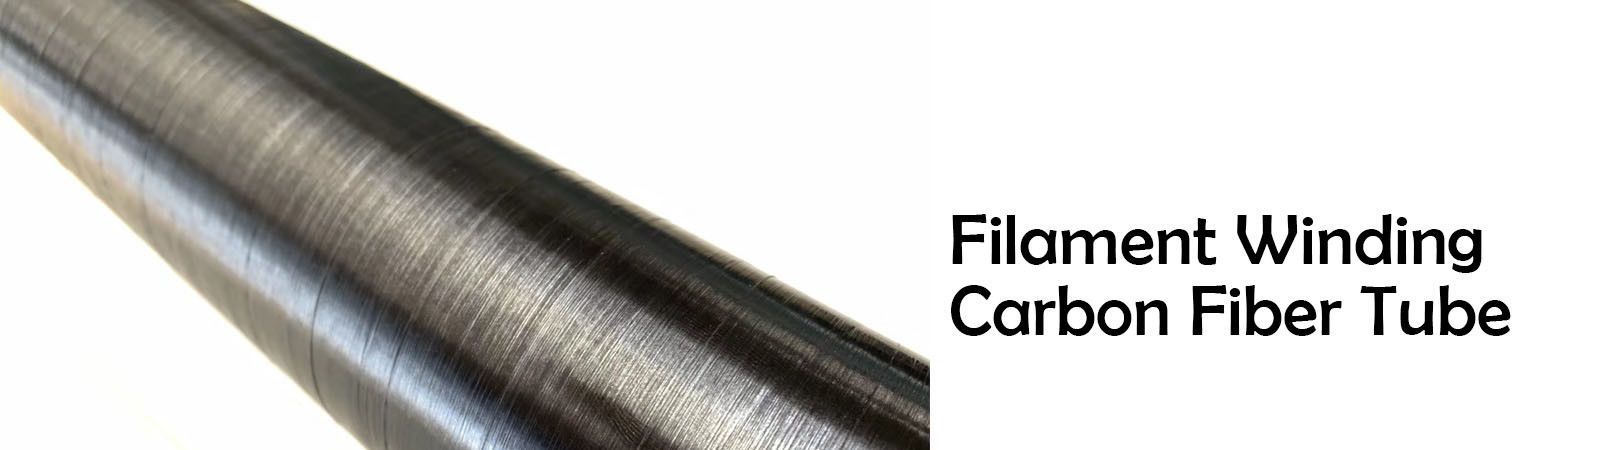 China best Filament Wound Carbon Fiber Tube on sales